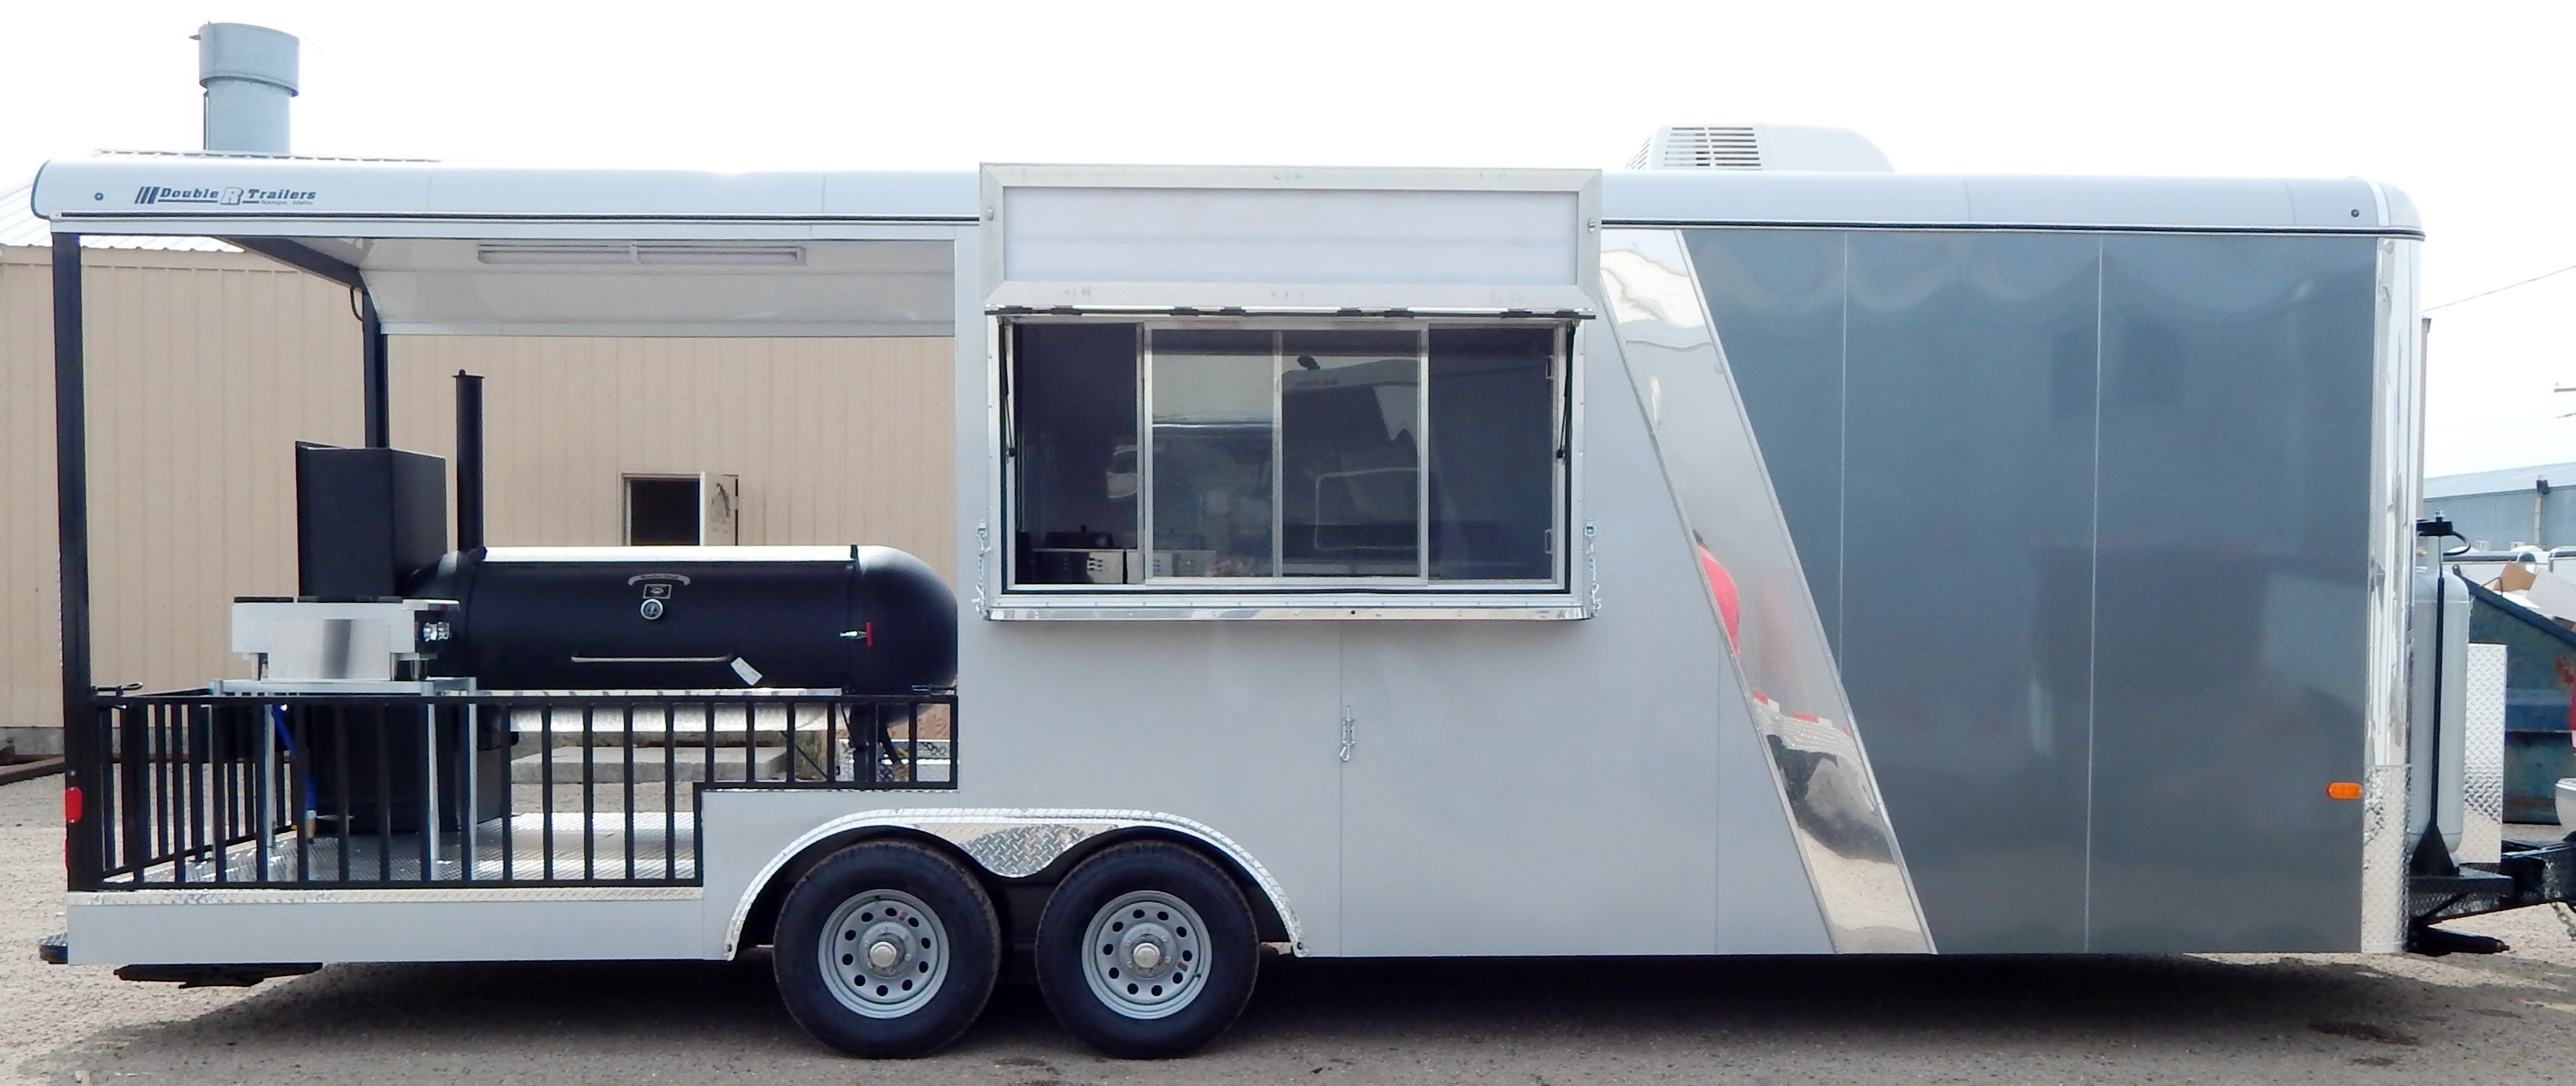 You Tube Build Food Truck